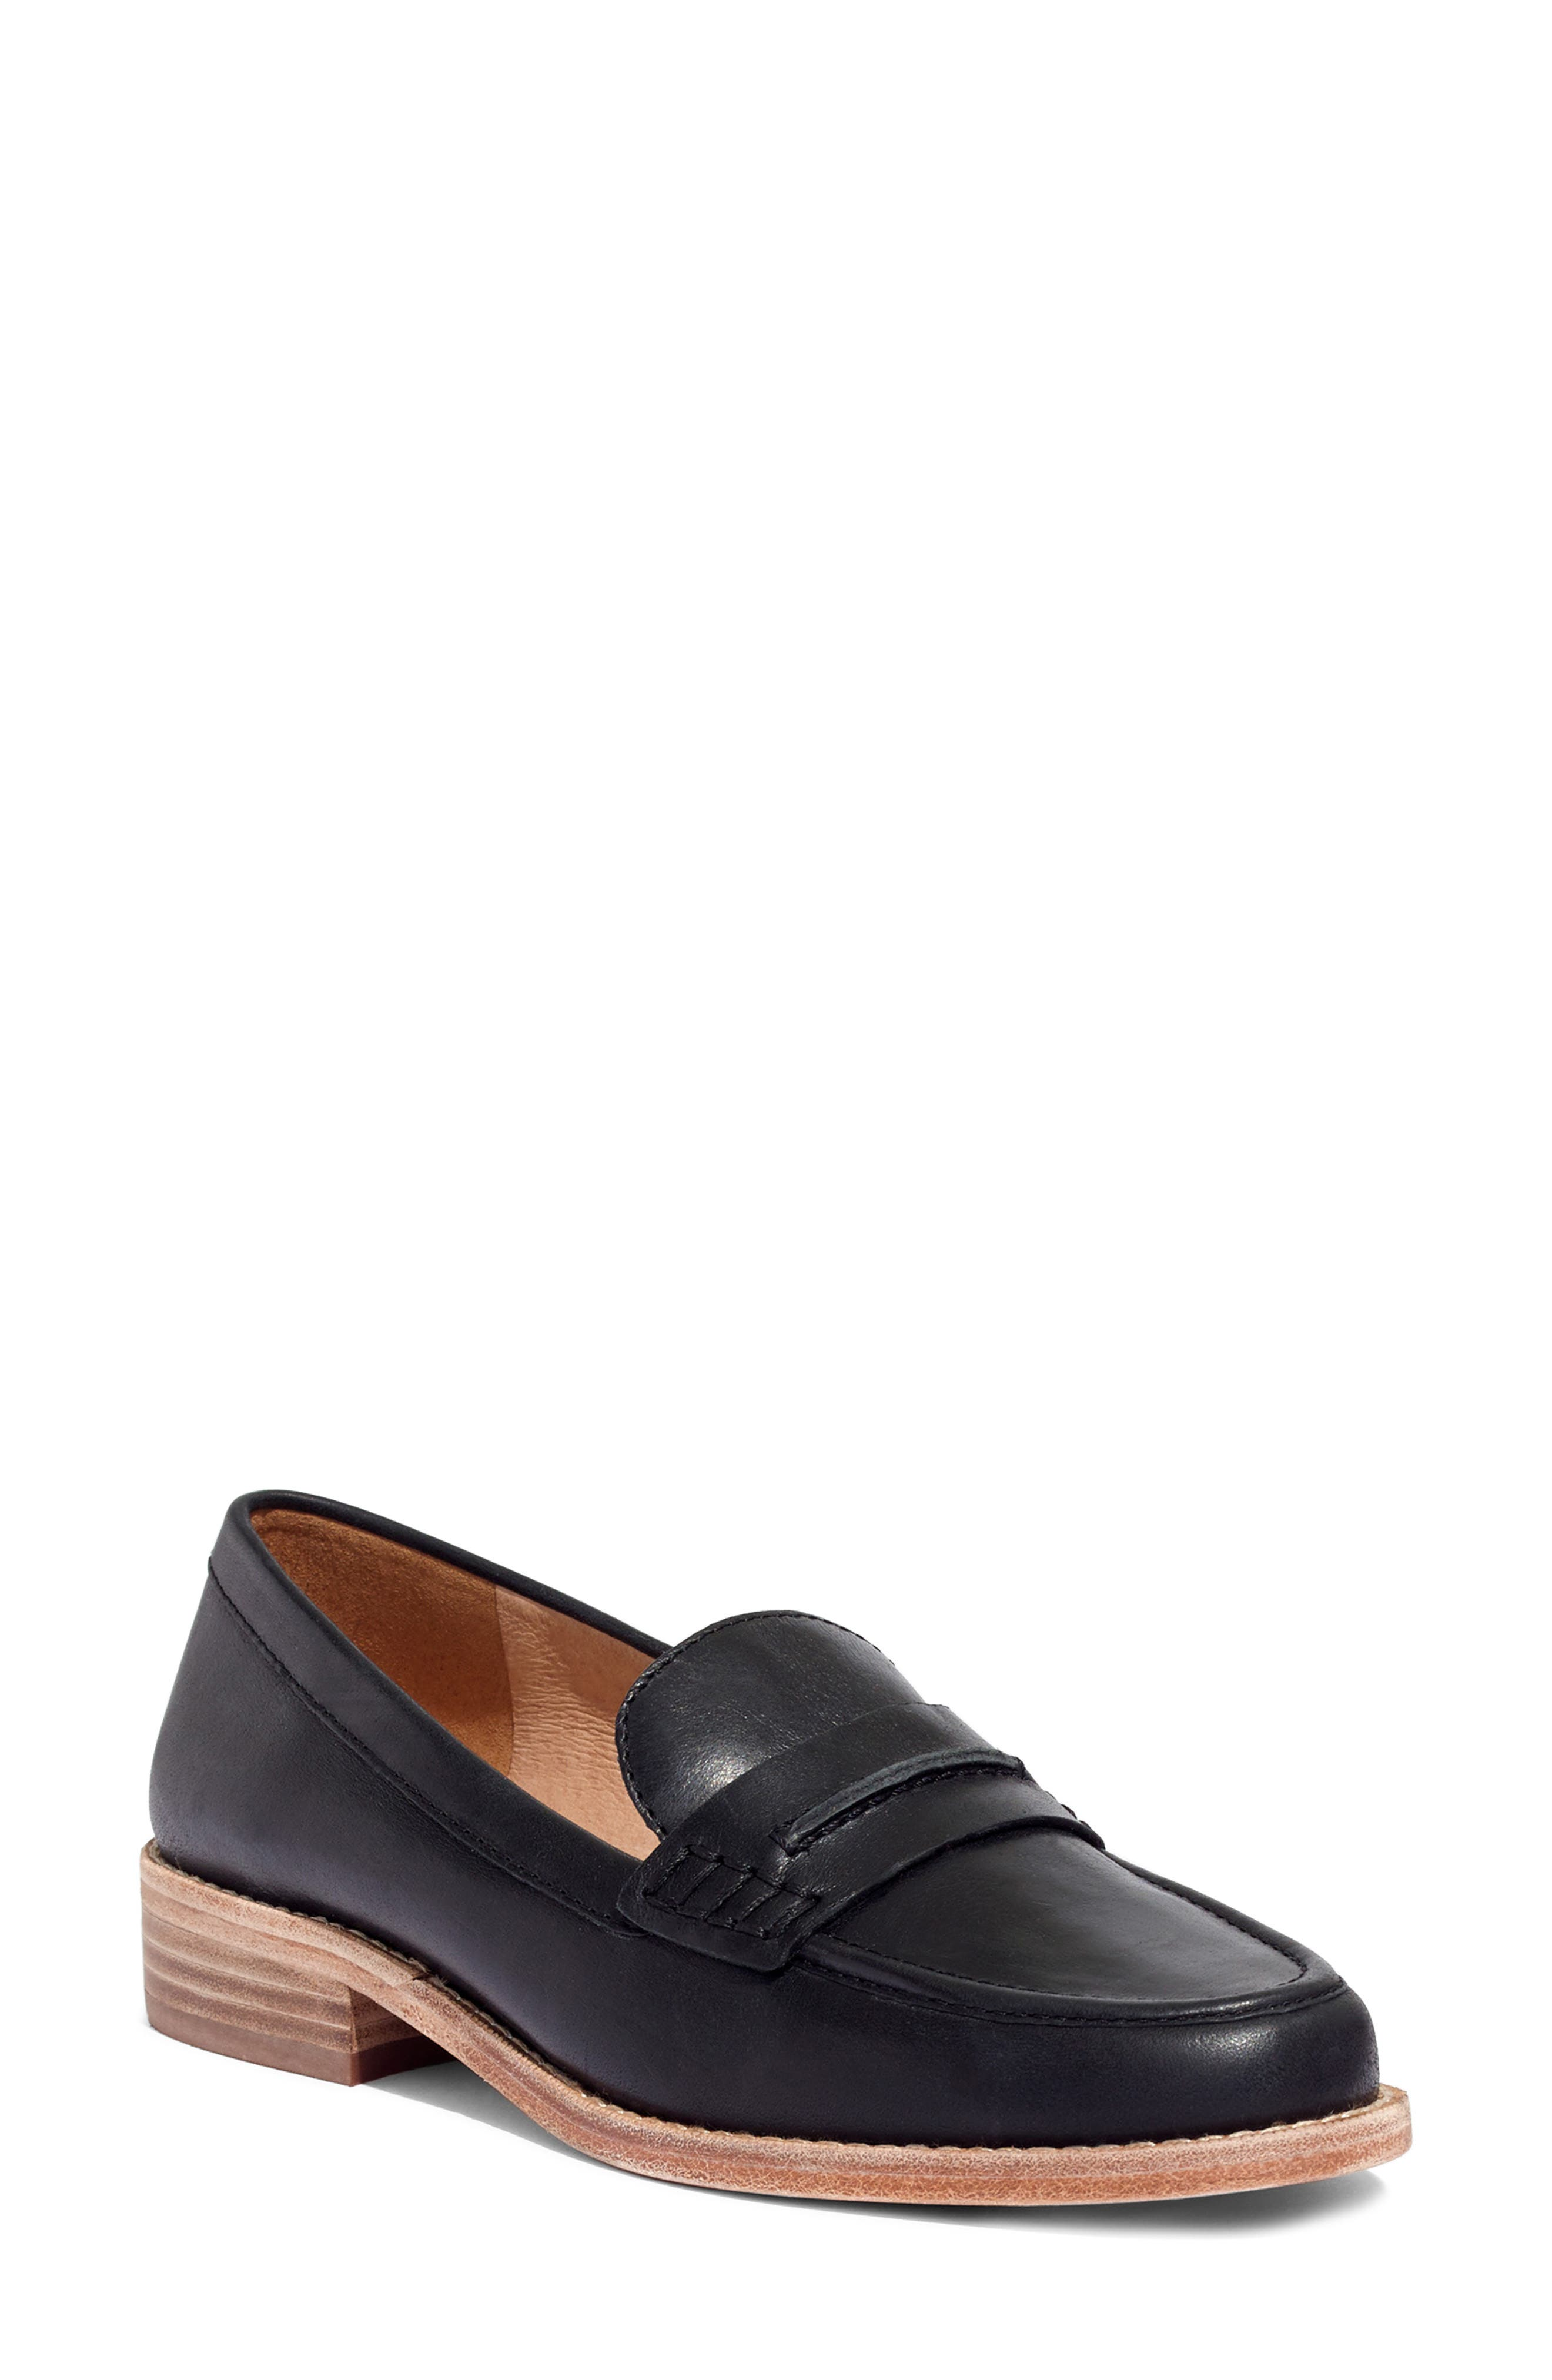 MADEWELL, The Elinor Loafer, Main thumbnail 1, color, BLACK LEATHER